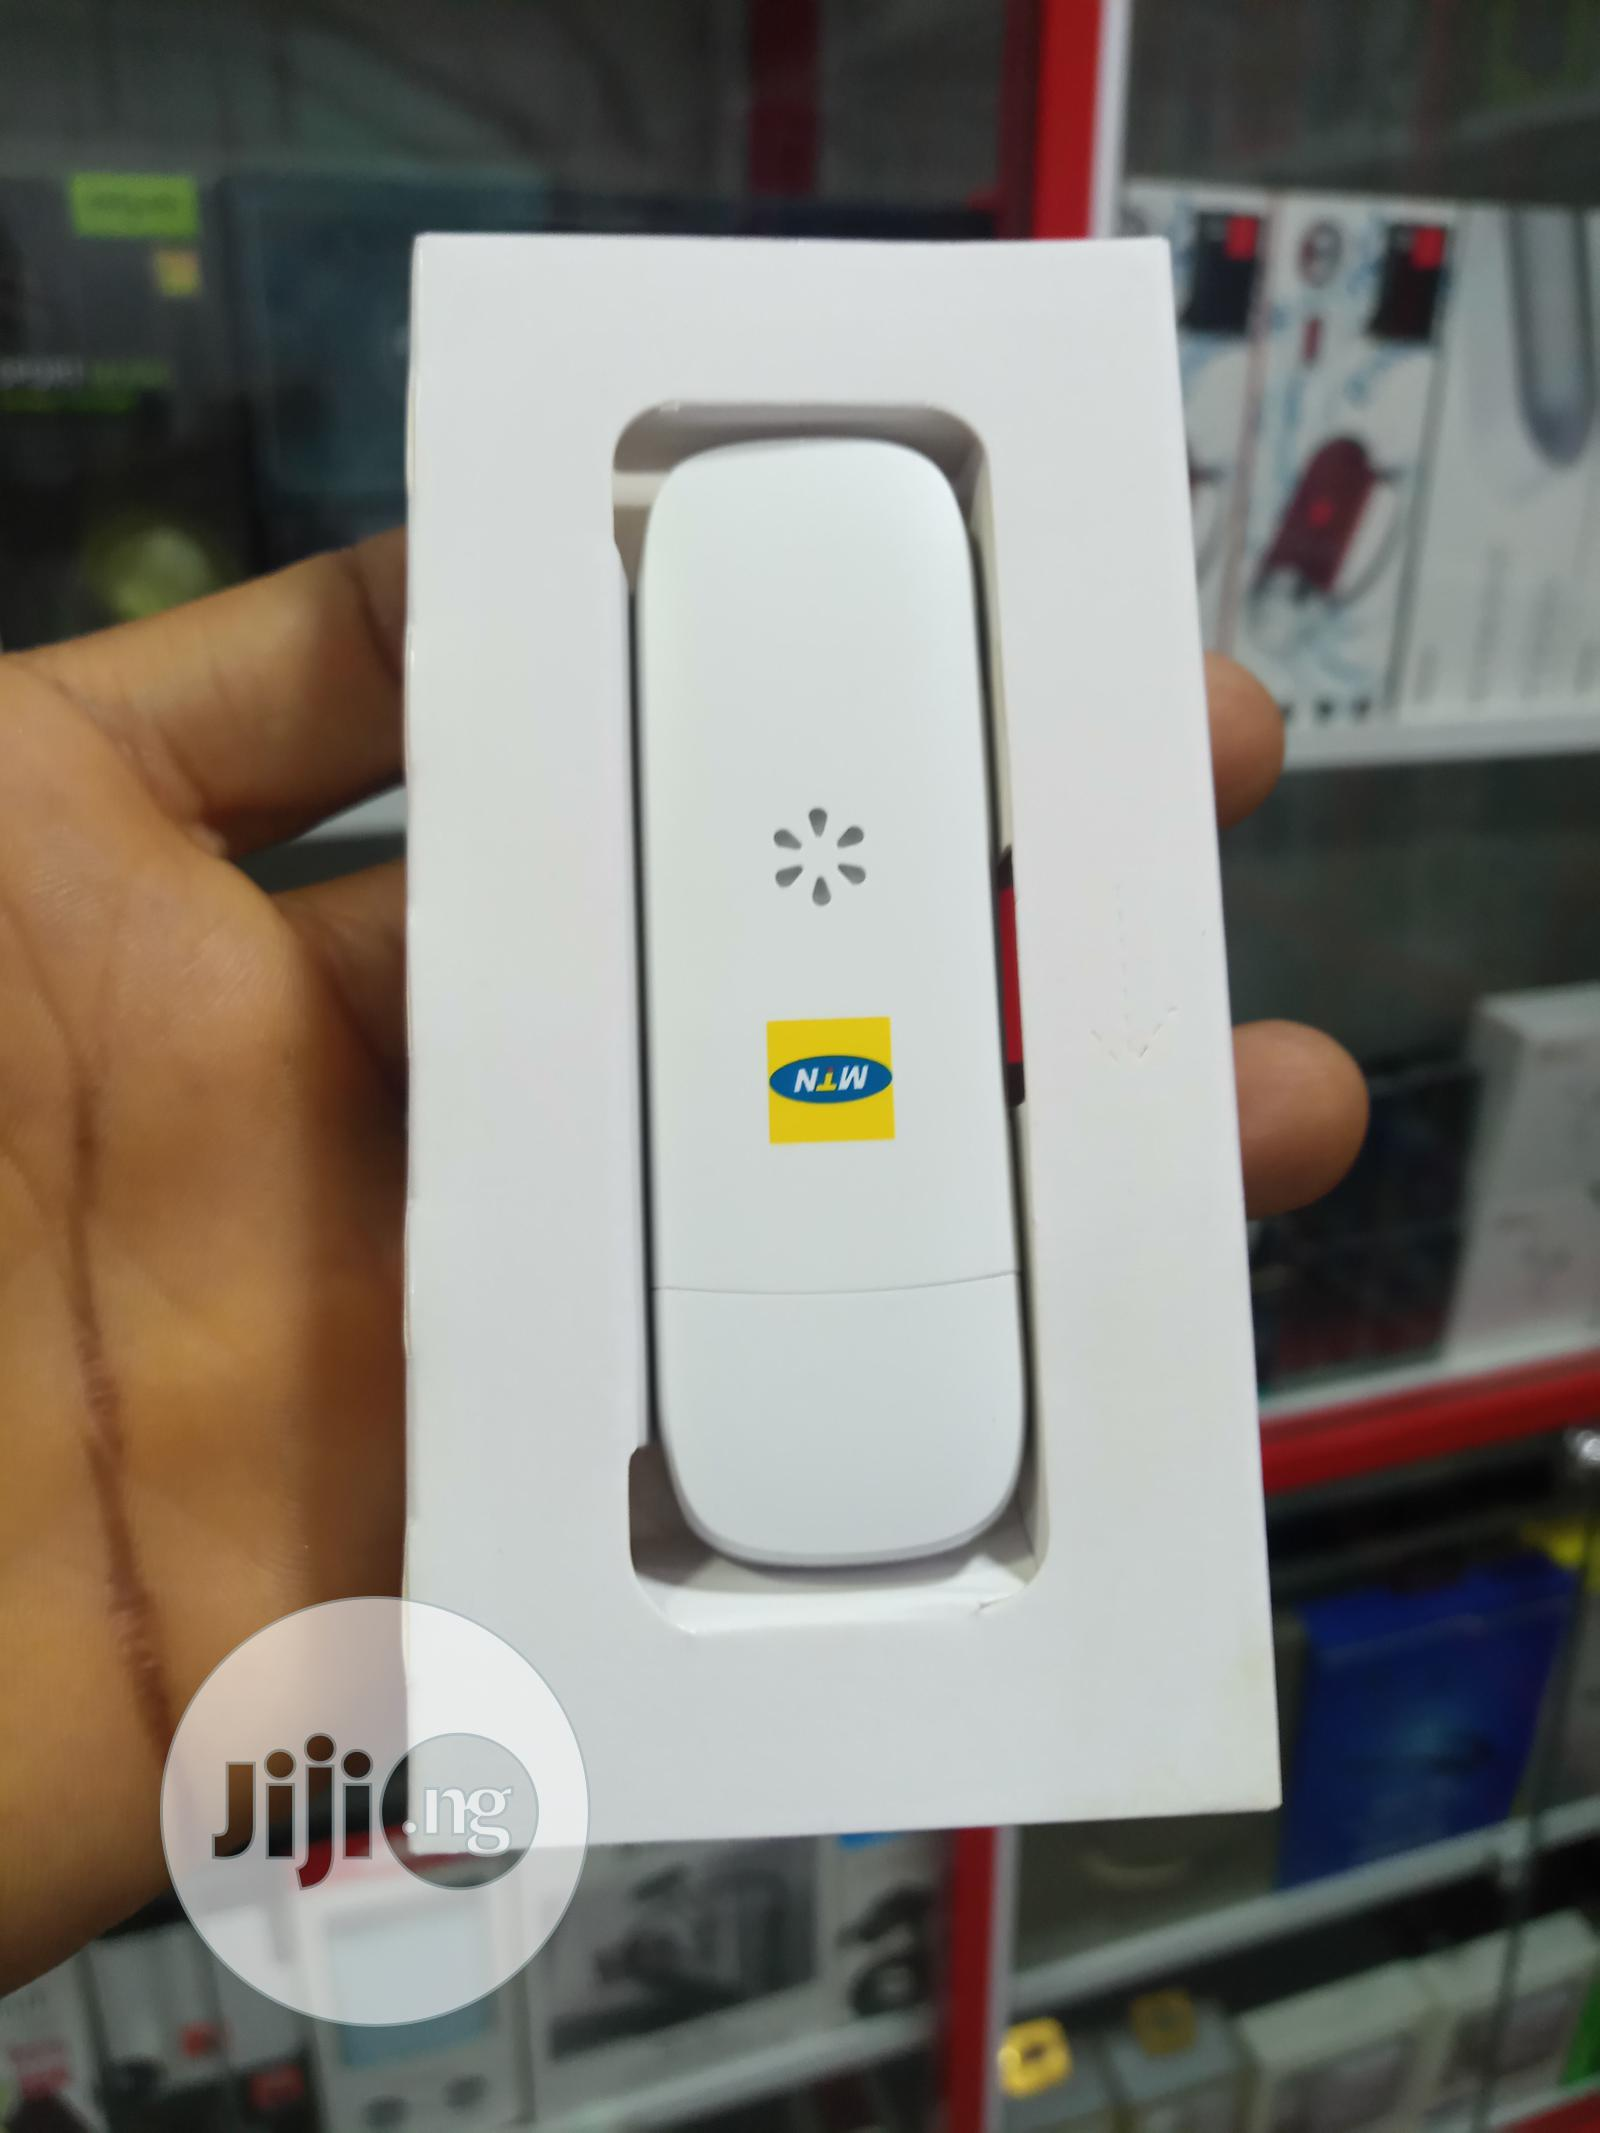 MTN Zte LTE USB Modem Mf831   Networking Products for sale in Ikeja, Lagos State, Nigeria